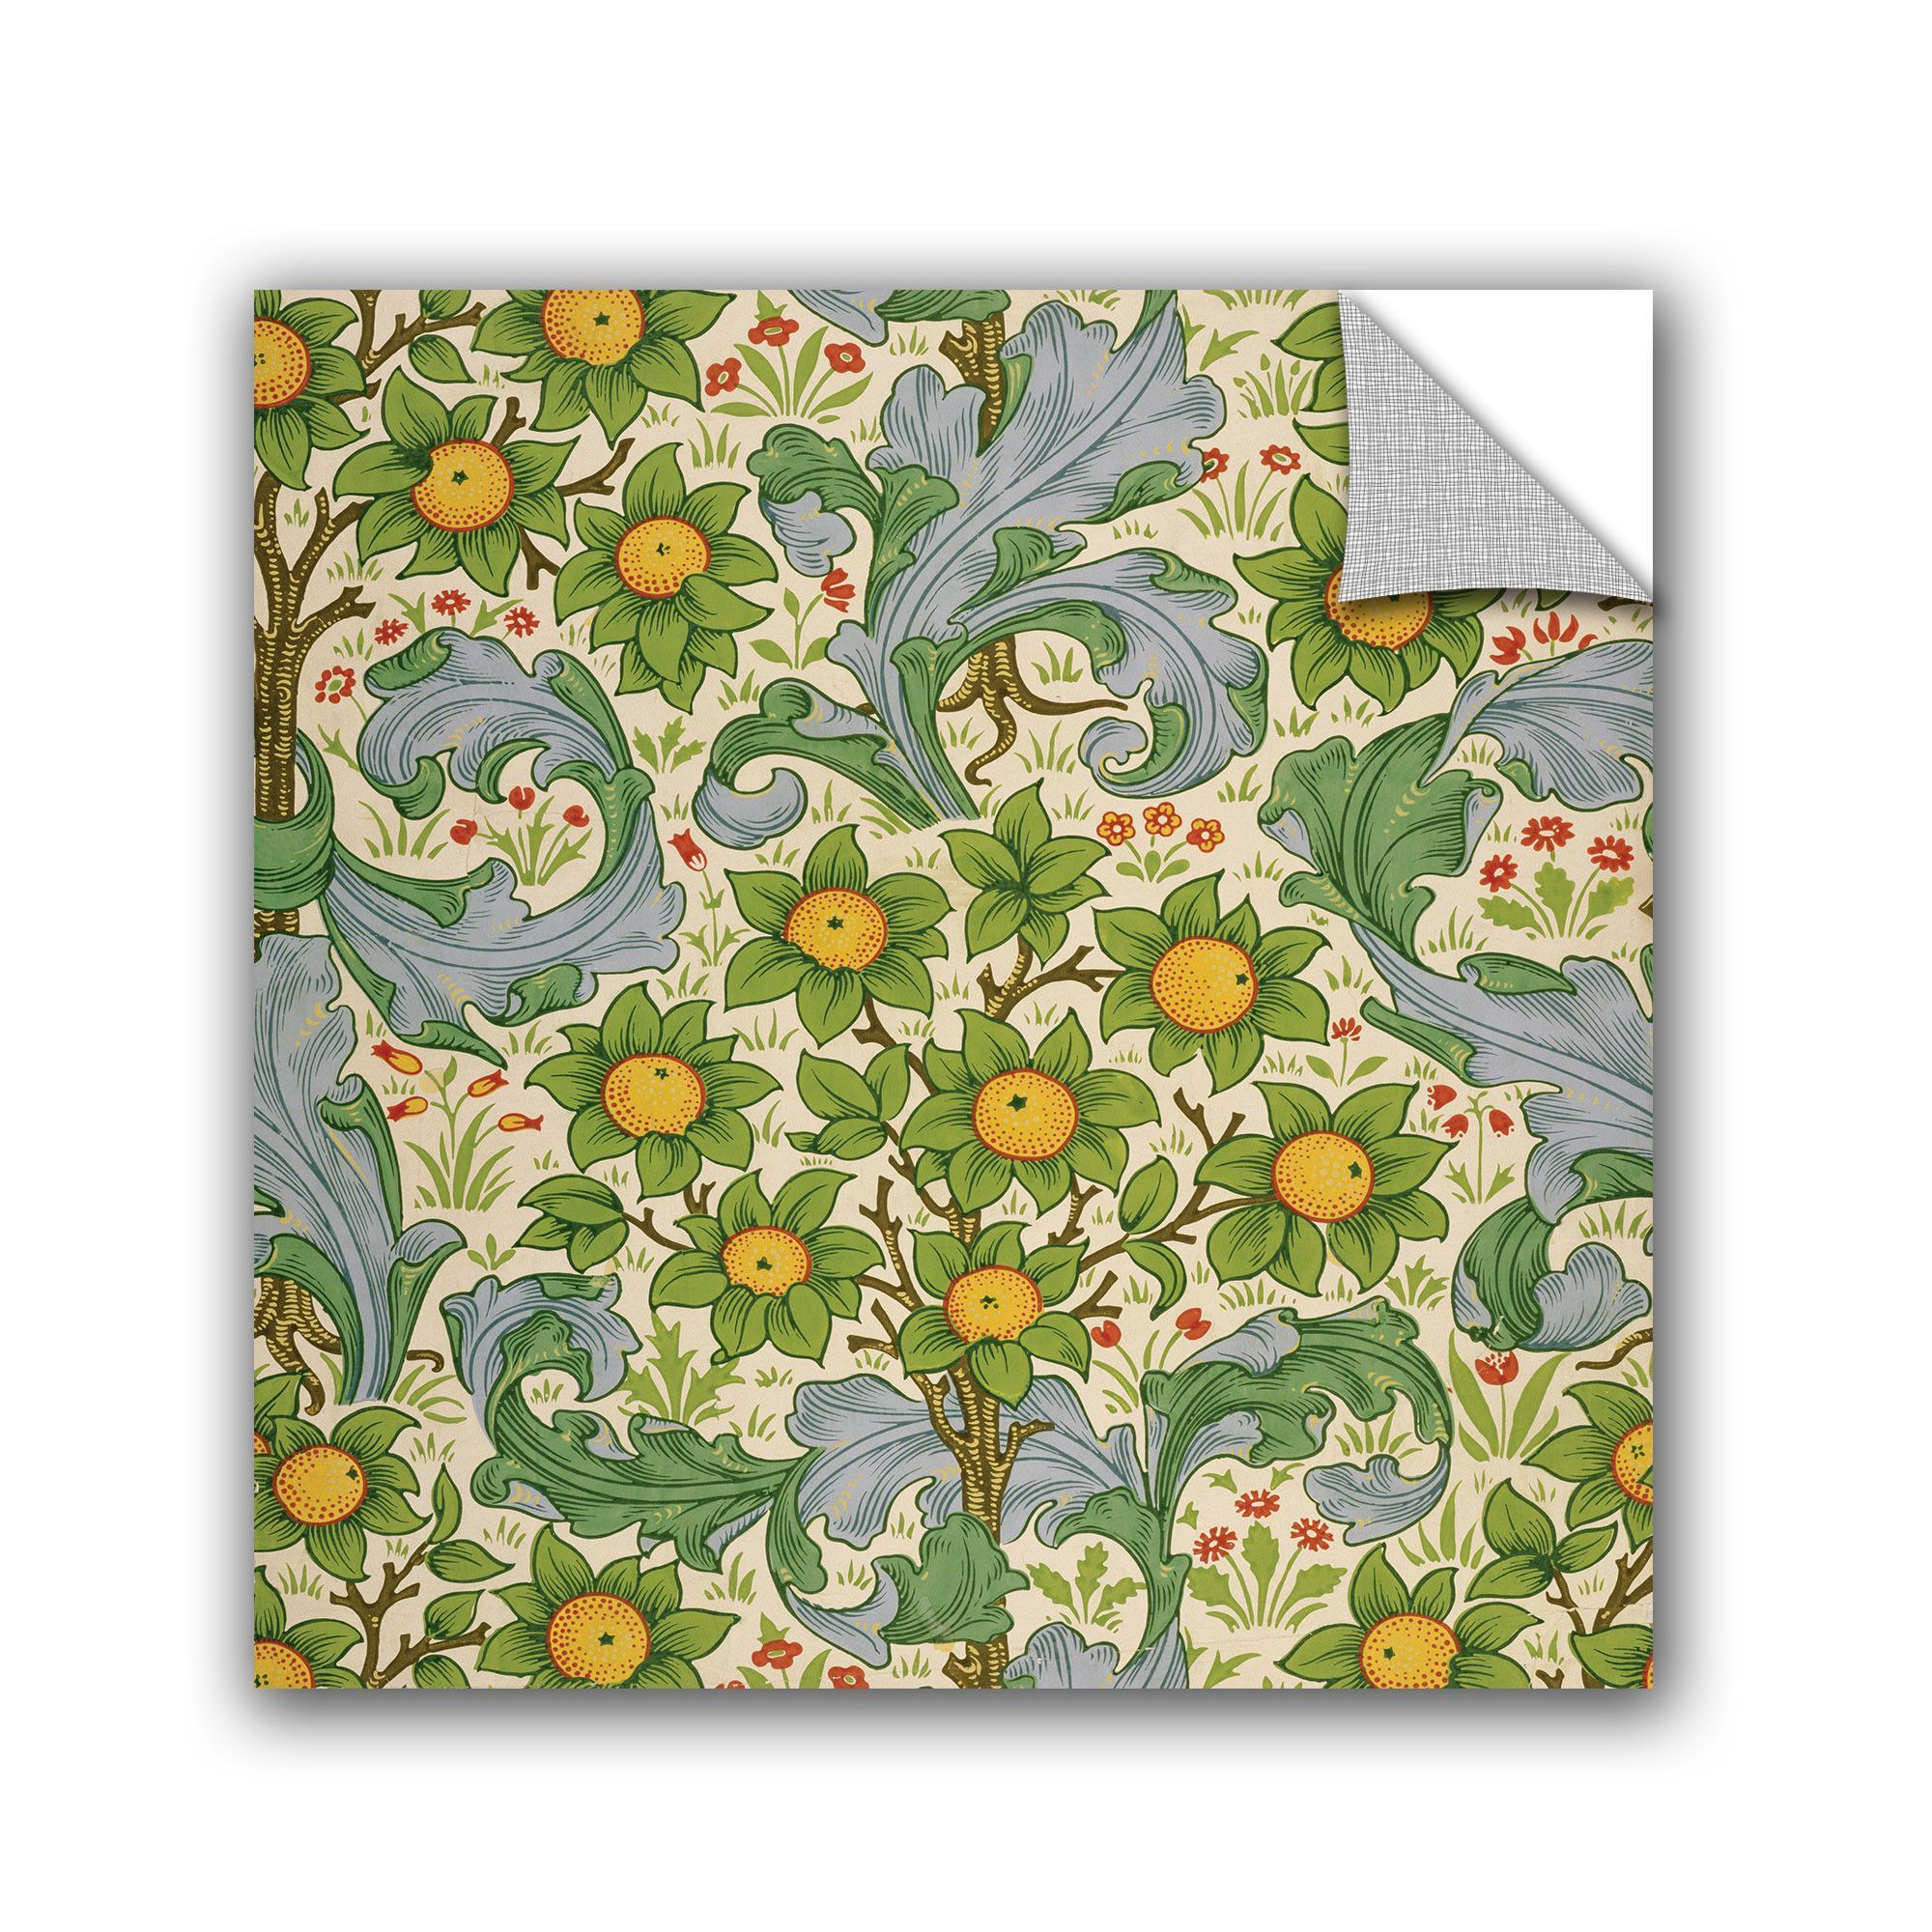 William Morris Wall Decal | William morris and Products